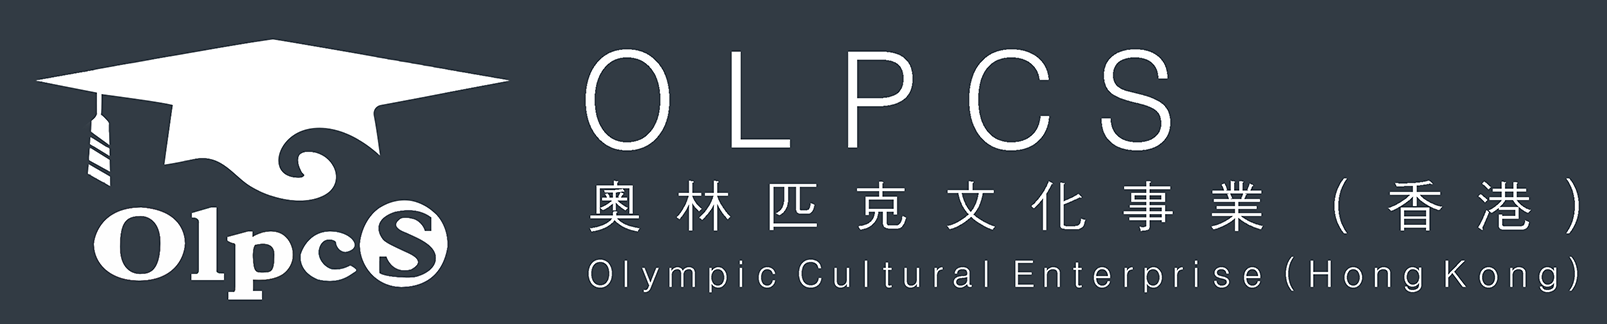 Olympic Cultural Enterprise(Hong Kong)